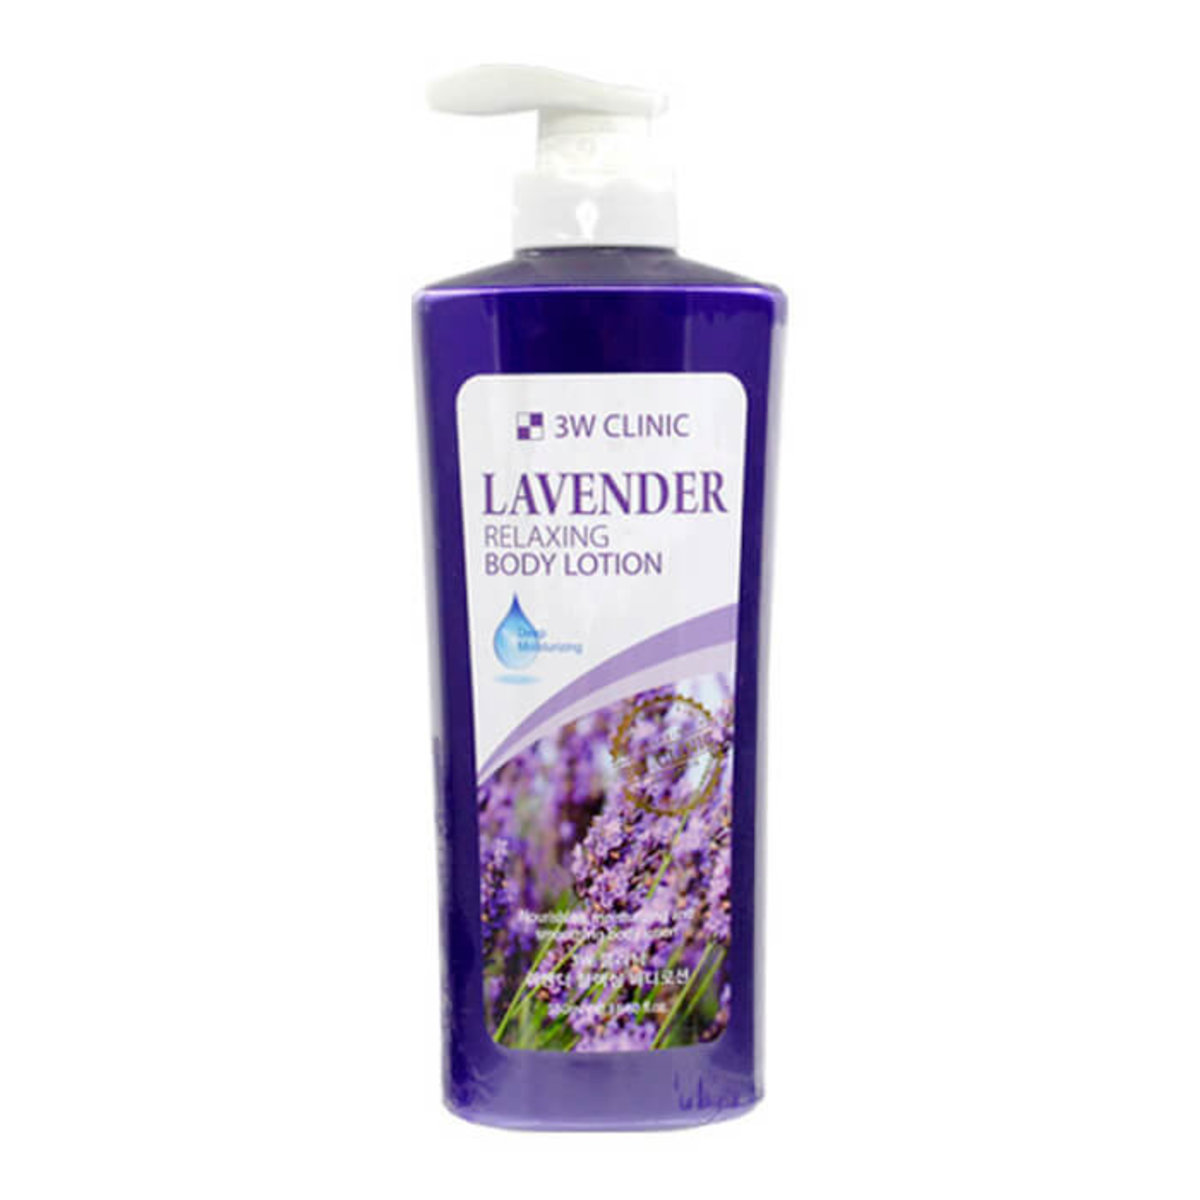 3W Clinic - Lavender Relaxing Body Lotion 550ml